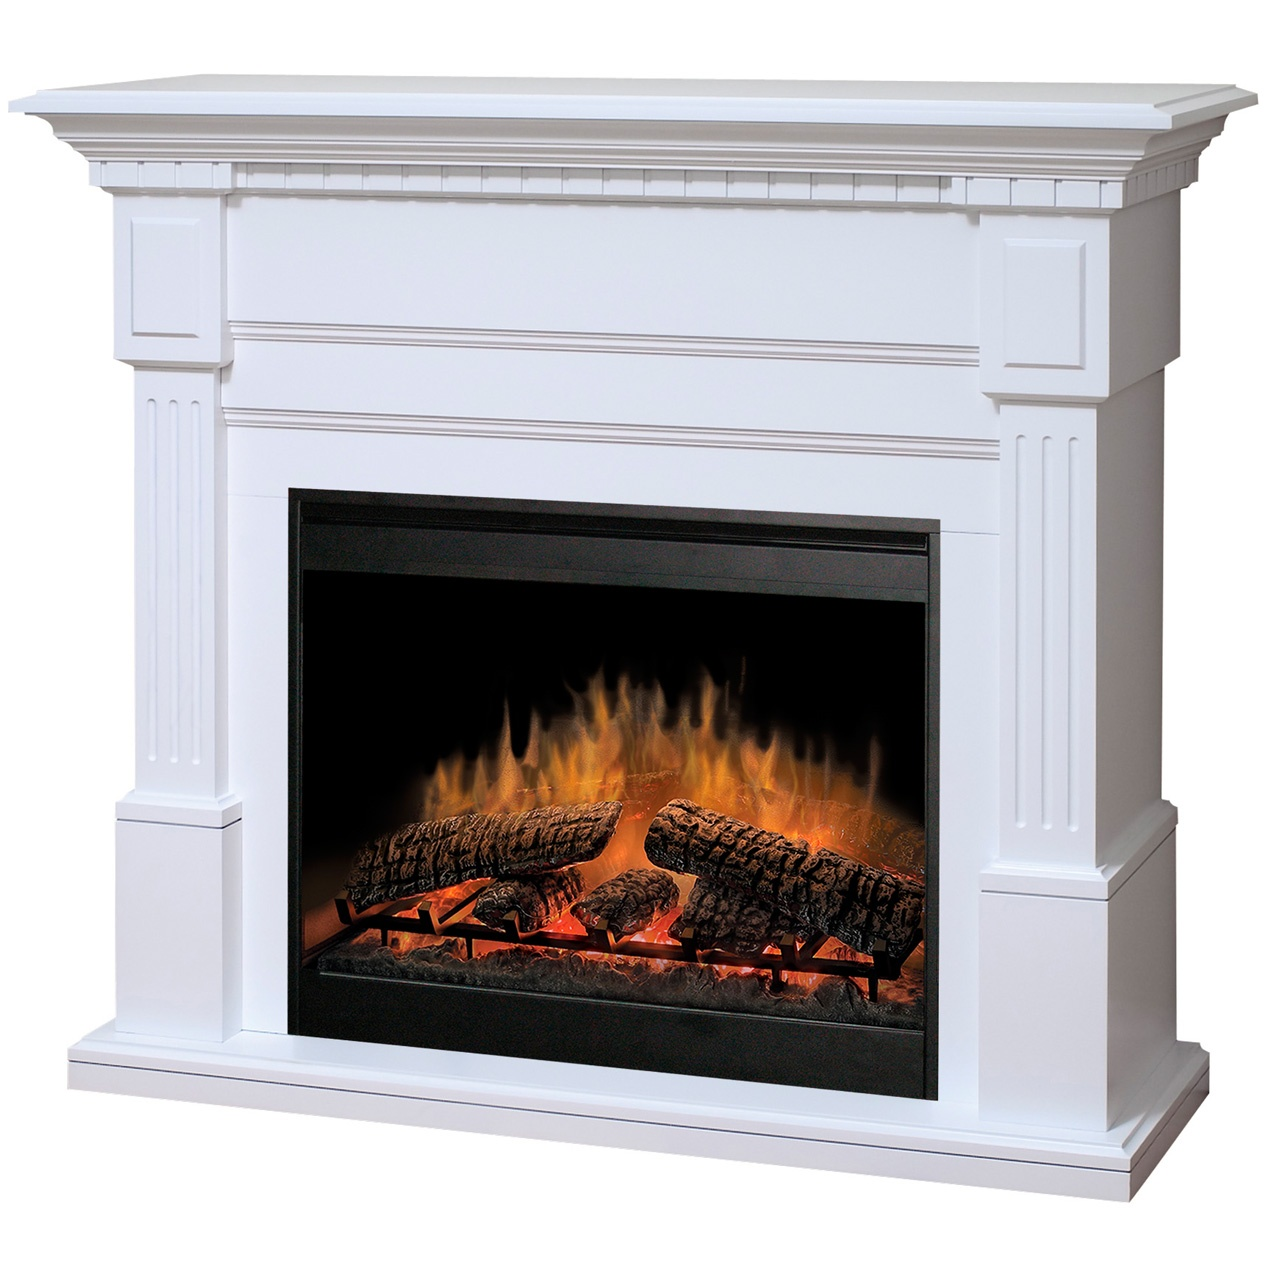 Dimplex Essex Gds30 1086w 30 Quot Electric Fireplace Wall